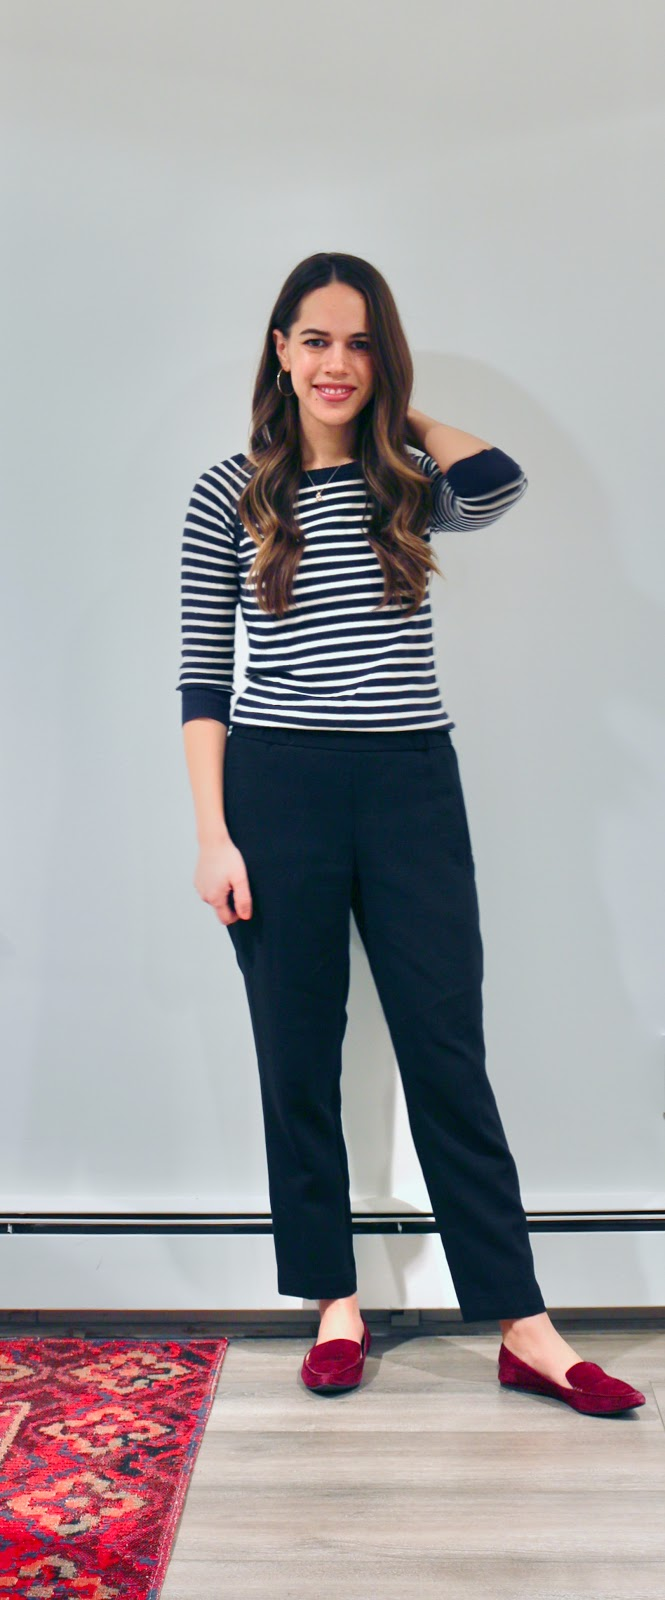 Jules in Flats - Striped Sweater with Aritzia Darontal Dress Pants (Business Casual Winter Workwear on a Budget)